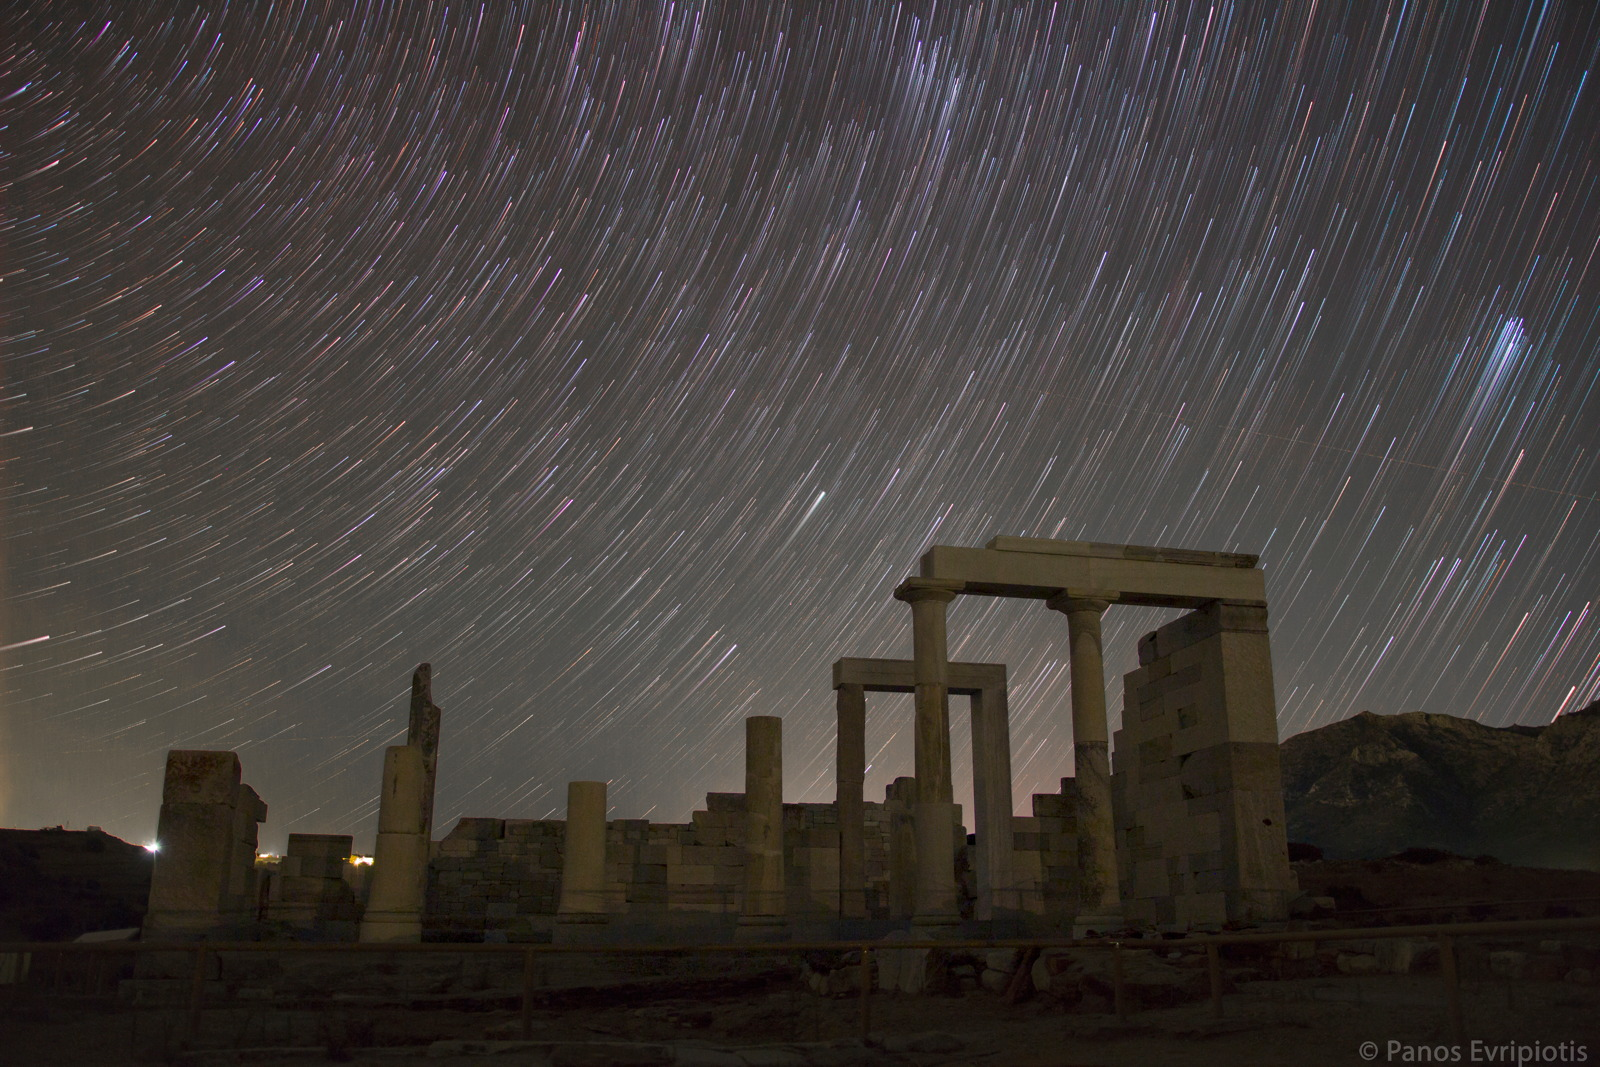 Star Trails Over the Temple of Demeter in Greece